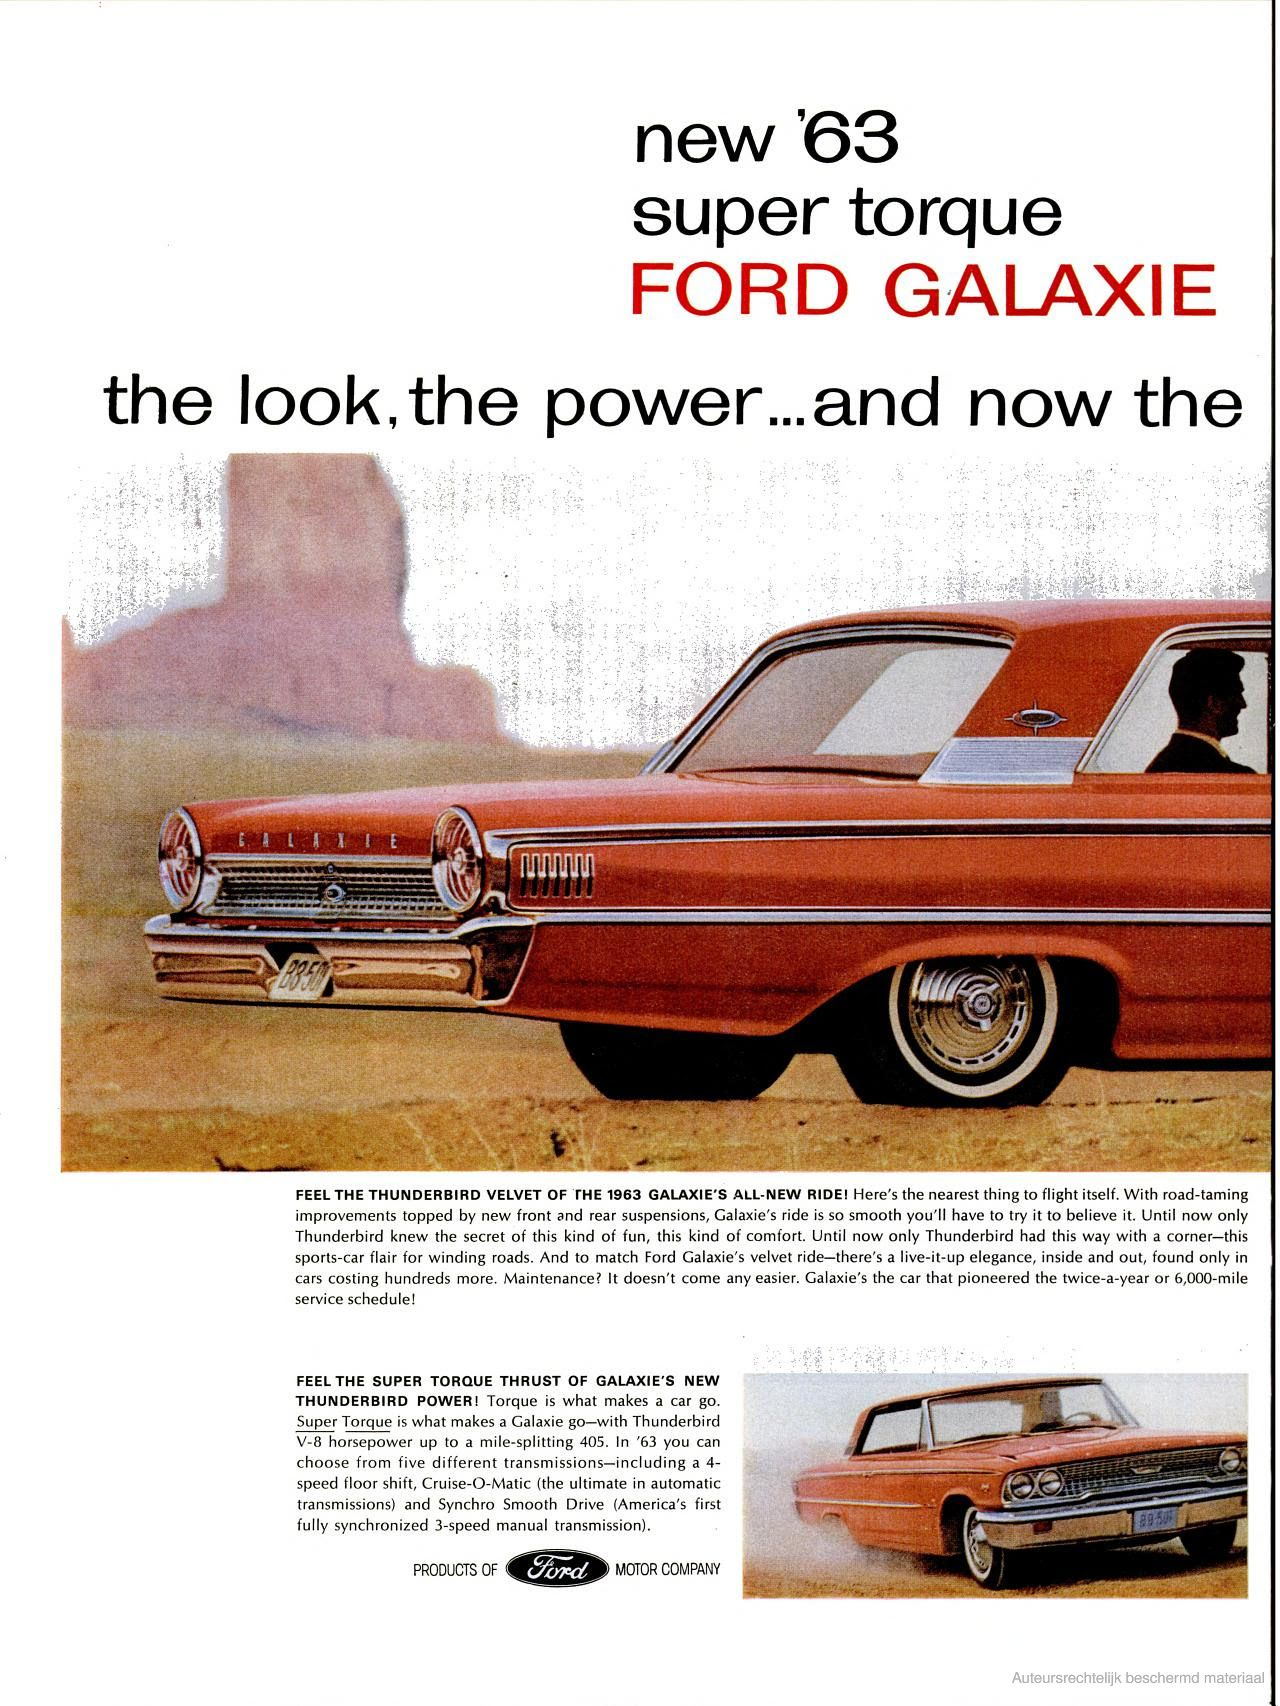 The 63 Ford Galaxie Ford Galaxie Automobile Advertising Car Advertising